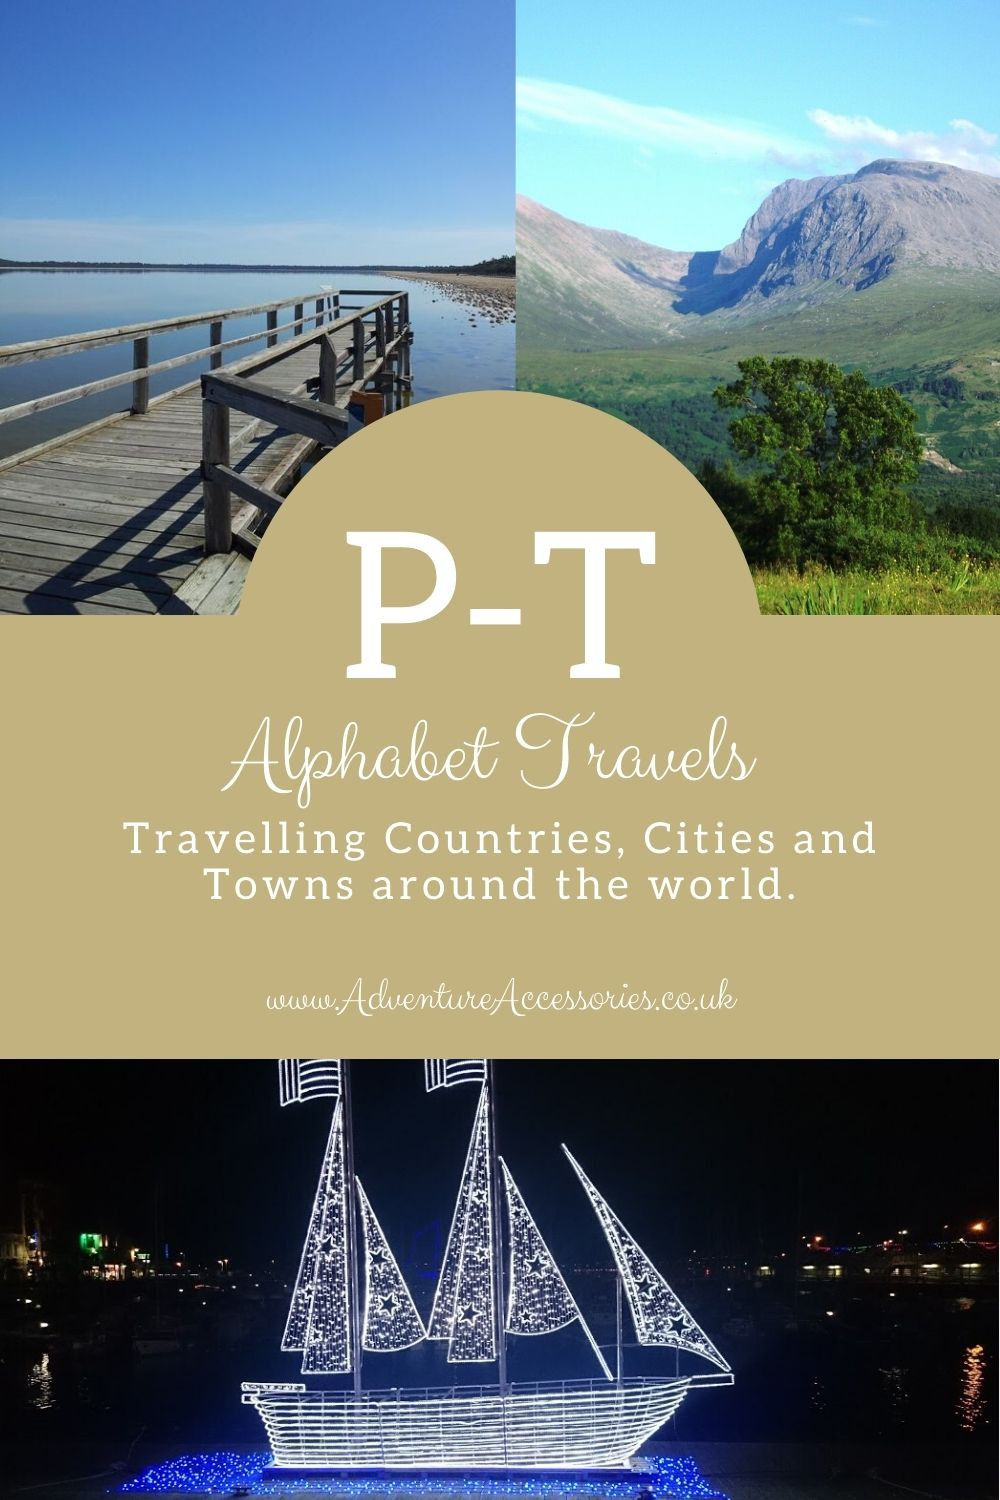 Pinterest, Alphabet Travels P-T. Adventure Accessories